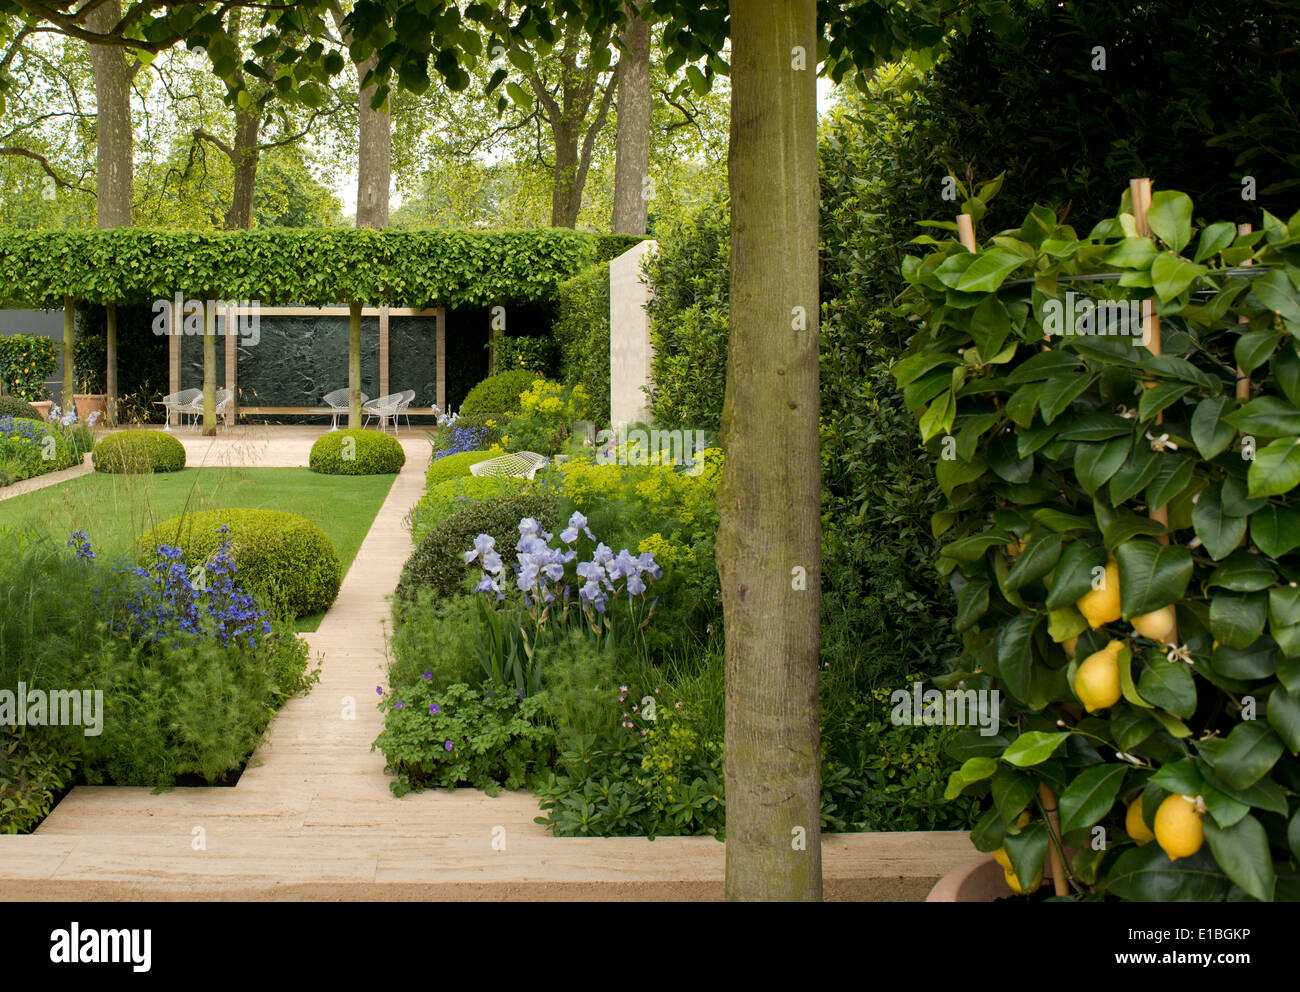 Chelsea flower show stock photos chelsea flower show stock images alamy - Chelsea flower show gold medal winners ...